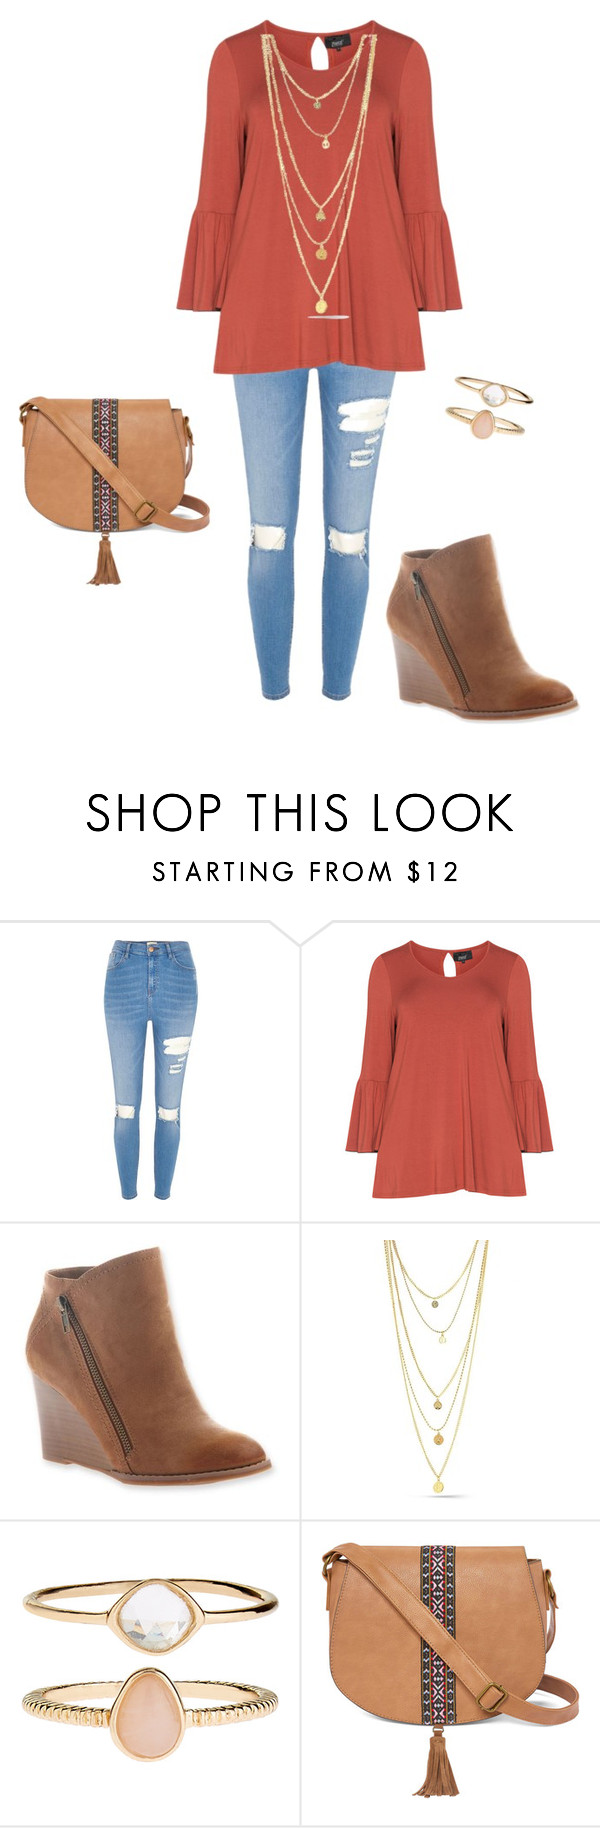 """Fall"" by jcmckeon on Polyvore featuring River Island, Zhenzi, Accessorize and T-shirt & Jeans"